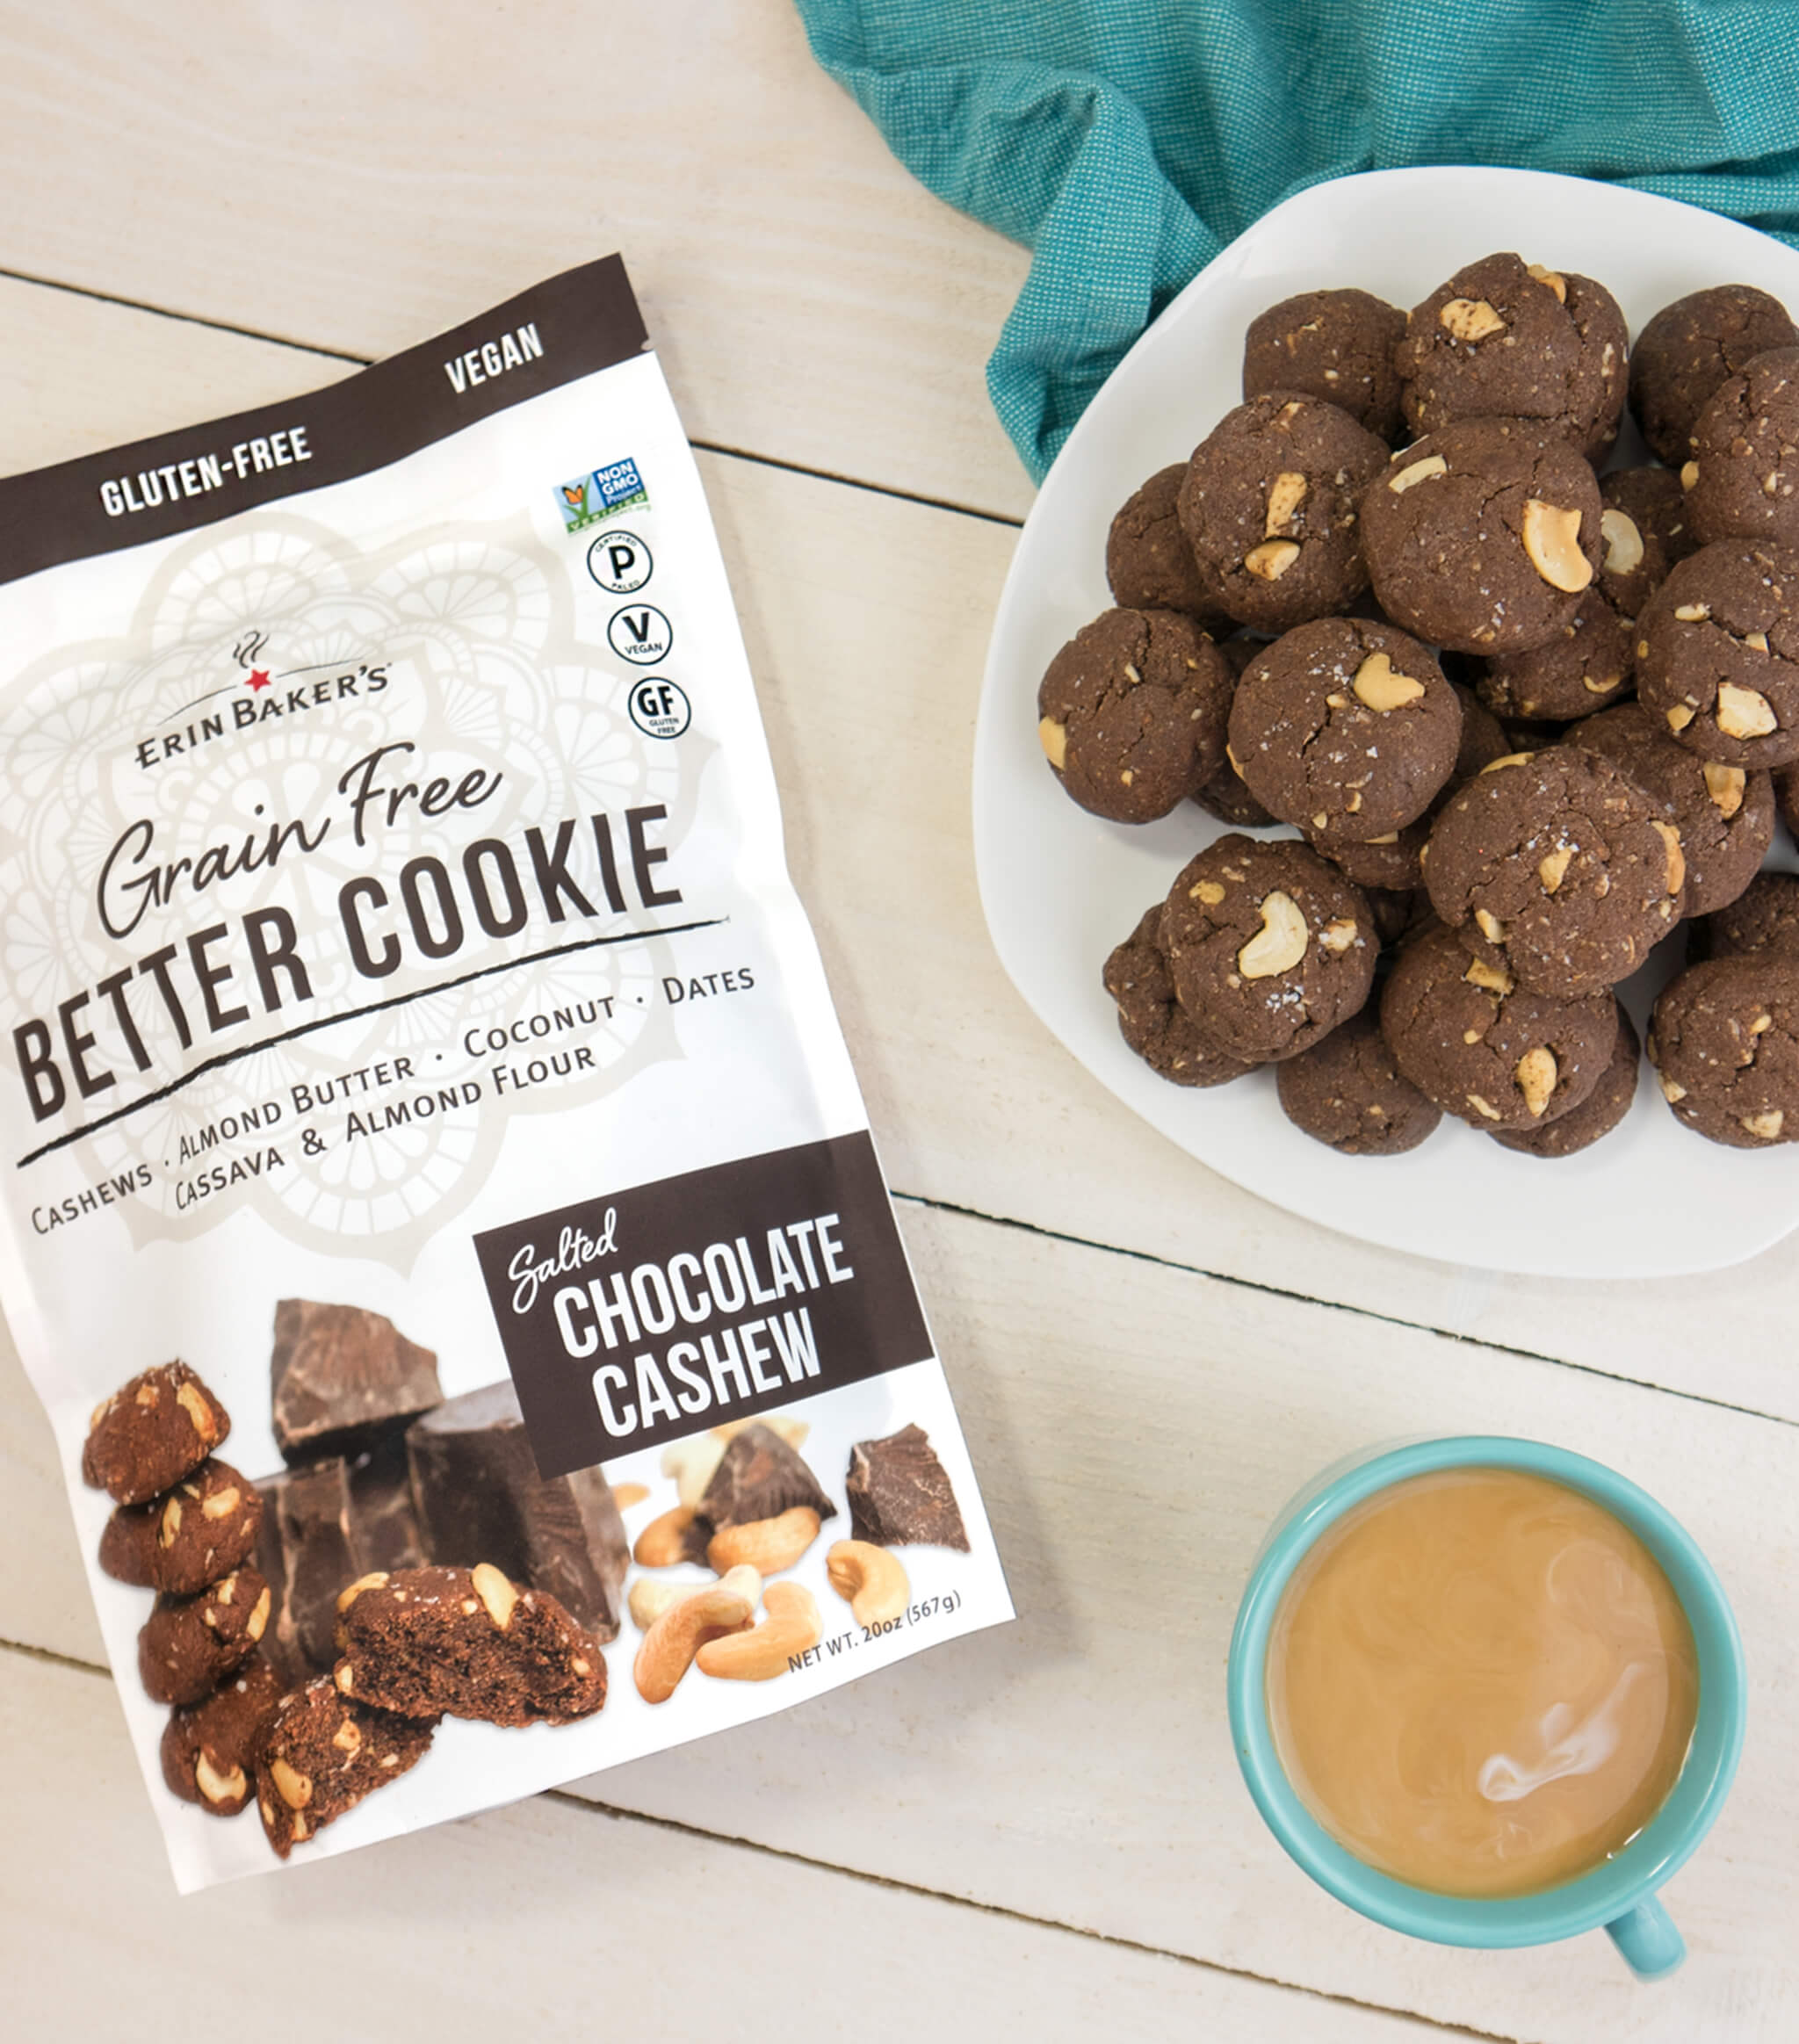 Grain Free Salted Chocolate Cashew Better Cookie